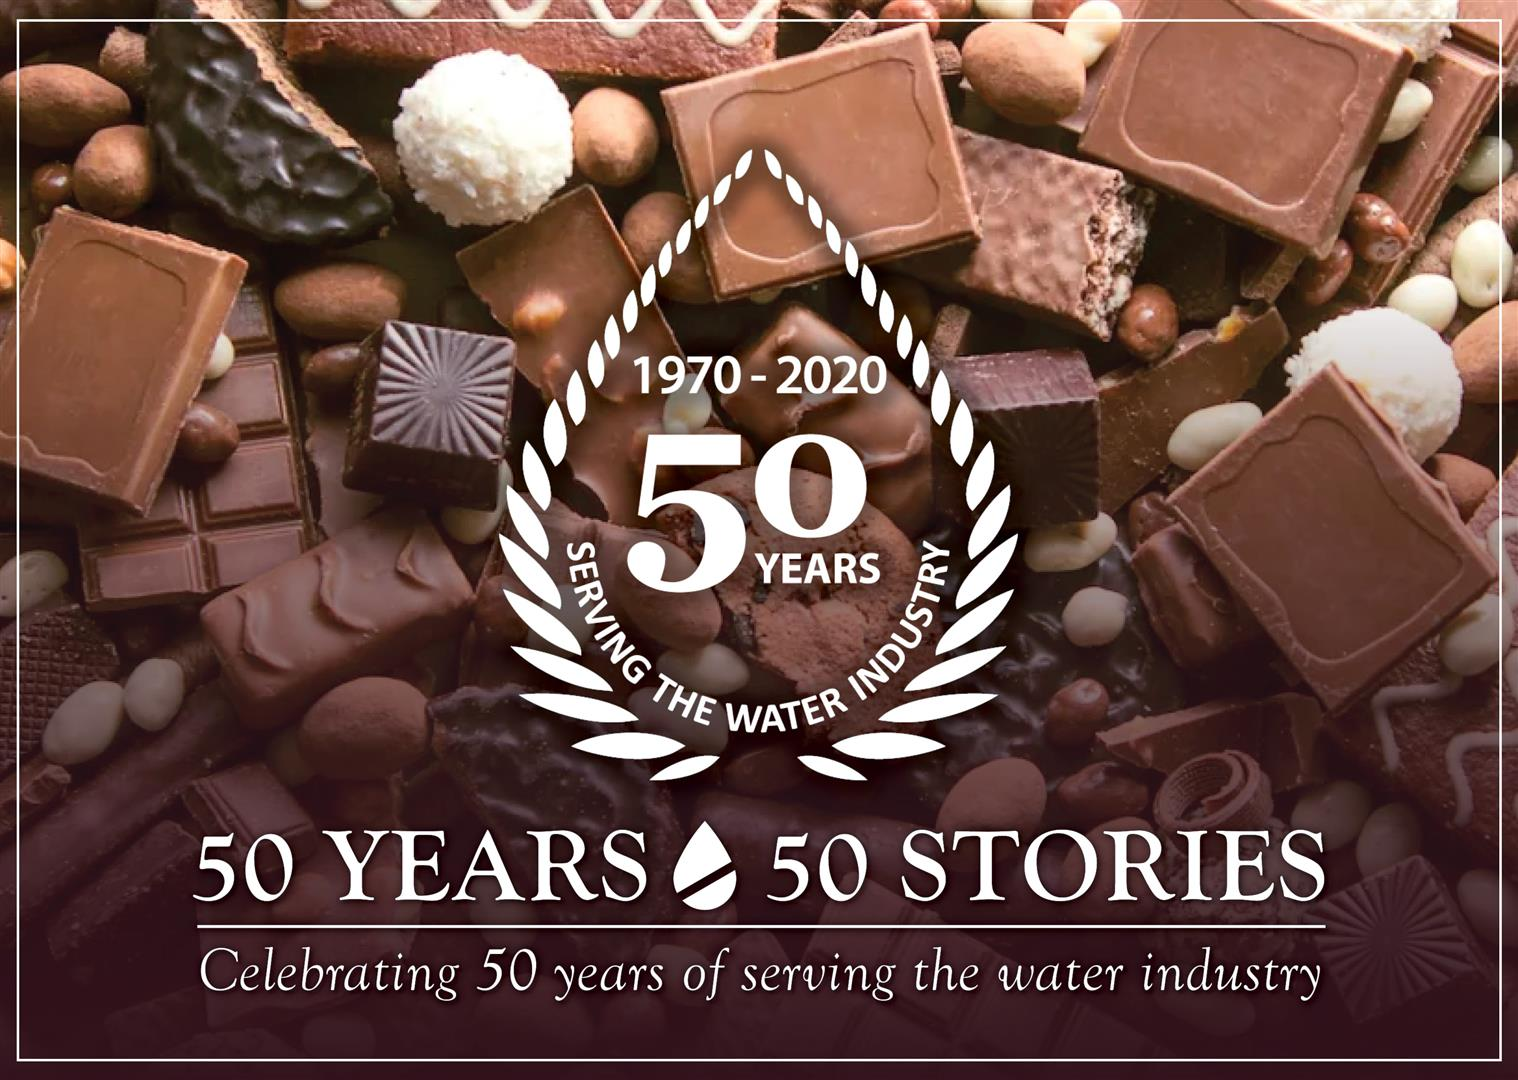 50 Years - 50 Stories: The Chocolate Factory (and the Upflow Anaerobic Sludge Blanket!)